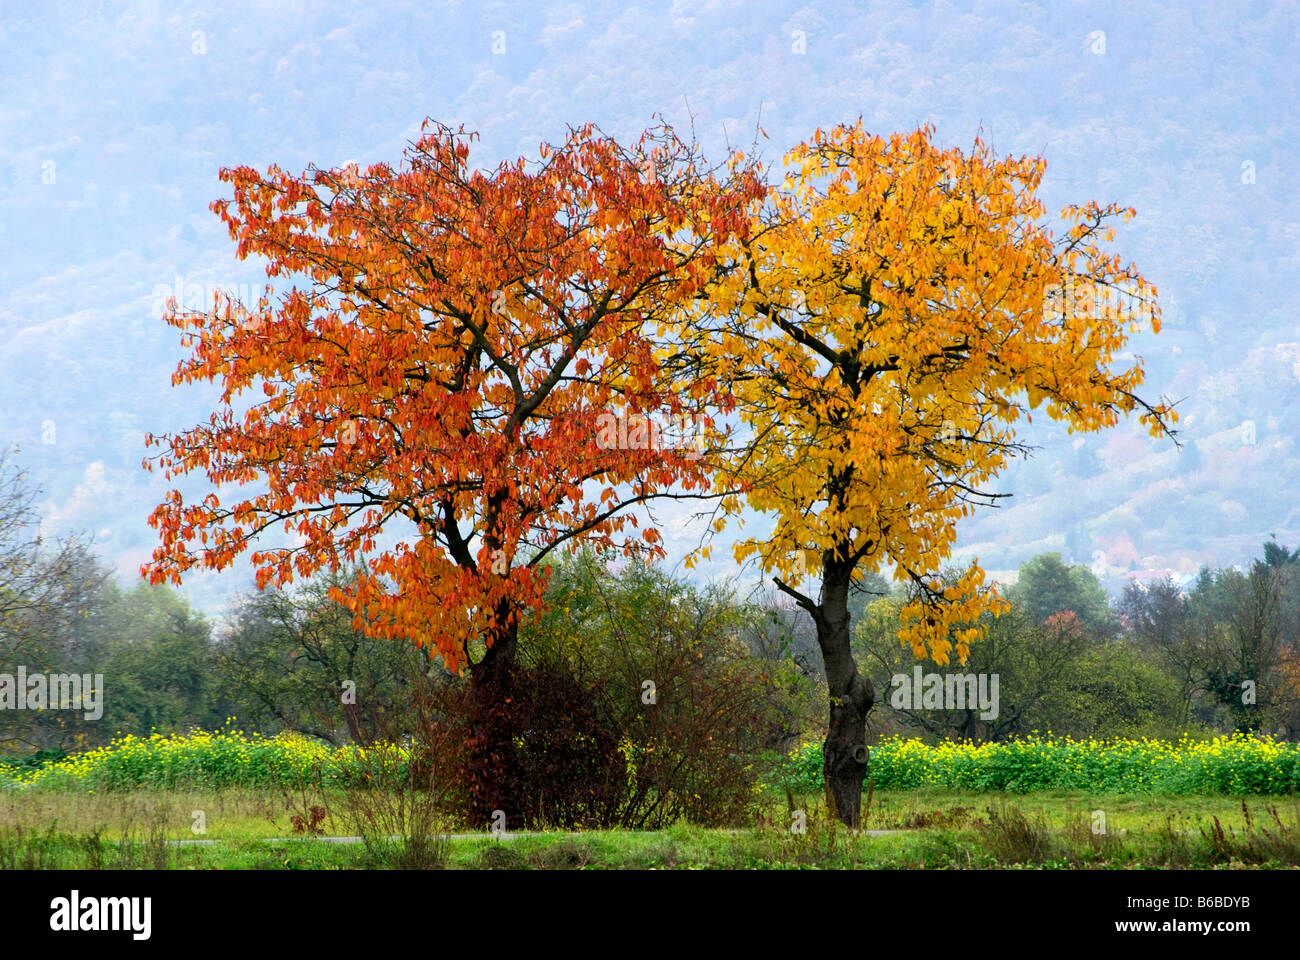 two apple trees in autumn one with orange leaves one with yellow stock photo 21150735 alamy. Black Bedroom Furniture Sets. Home Design Ideas